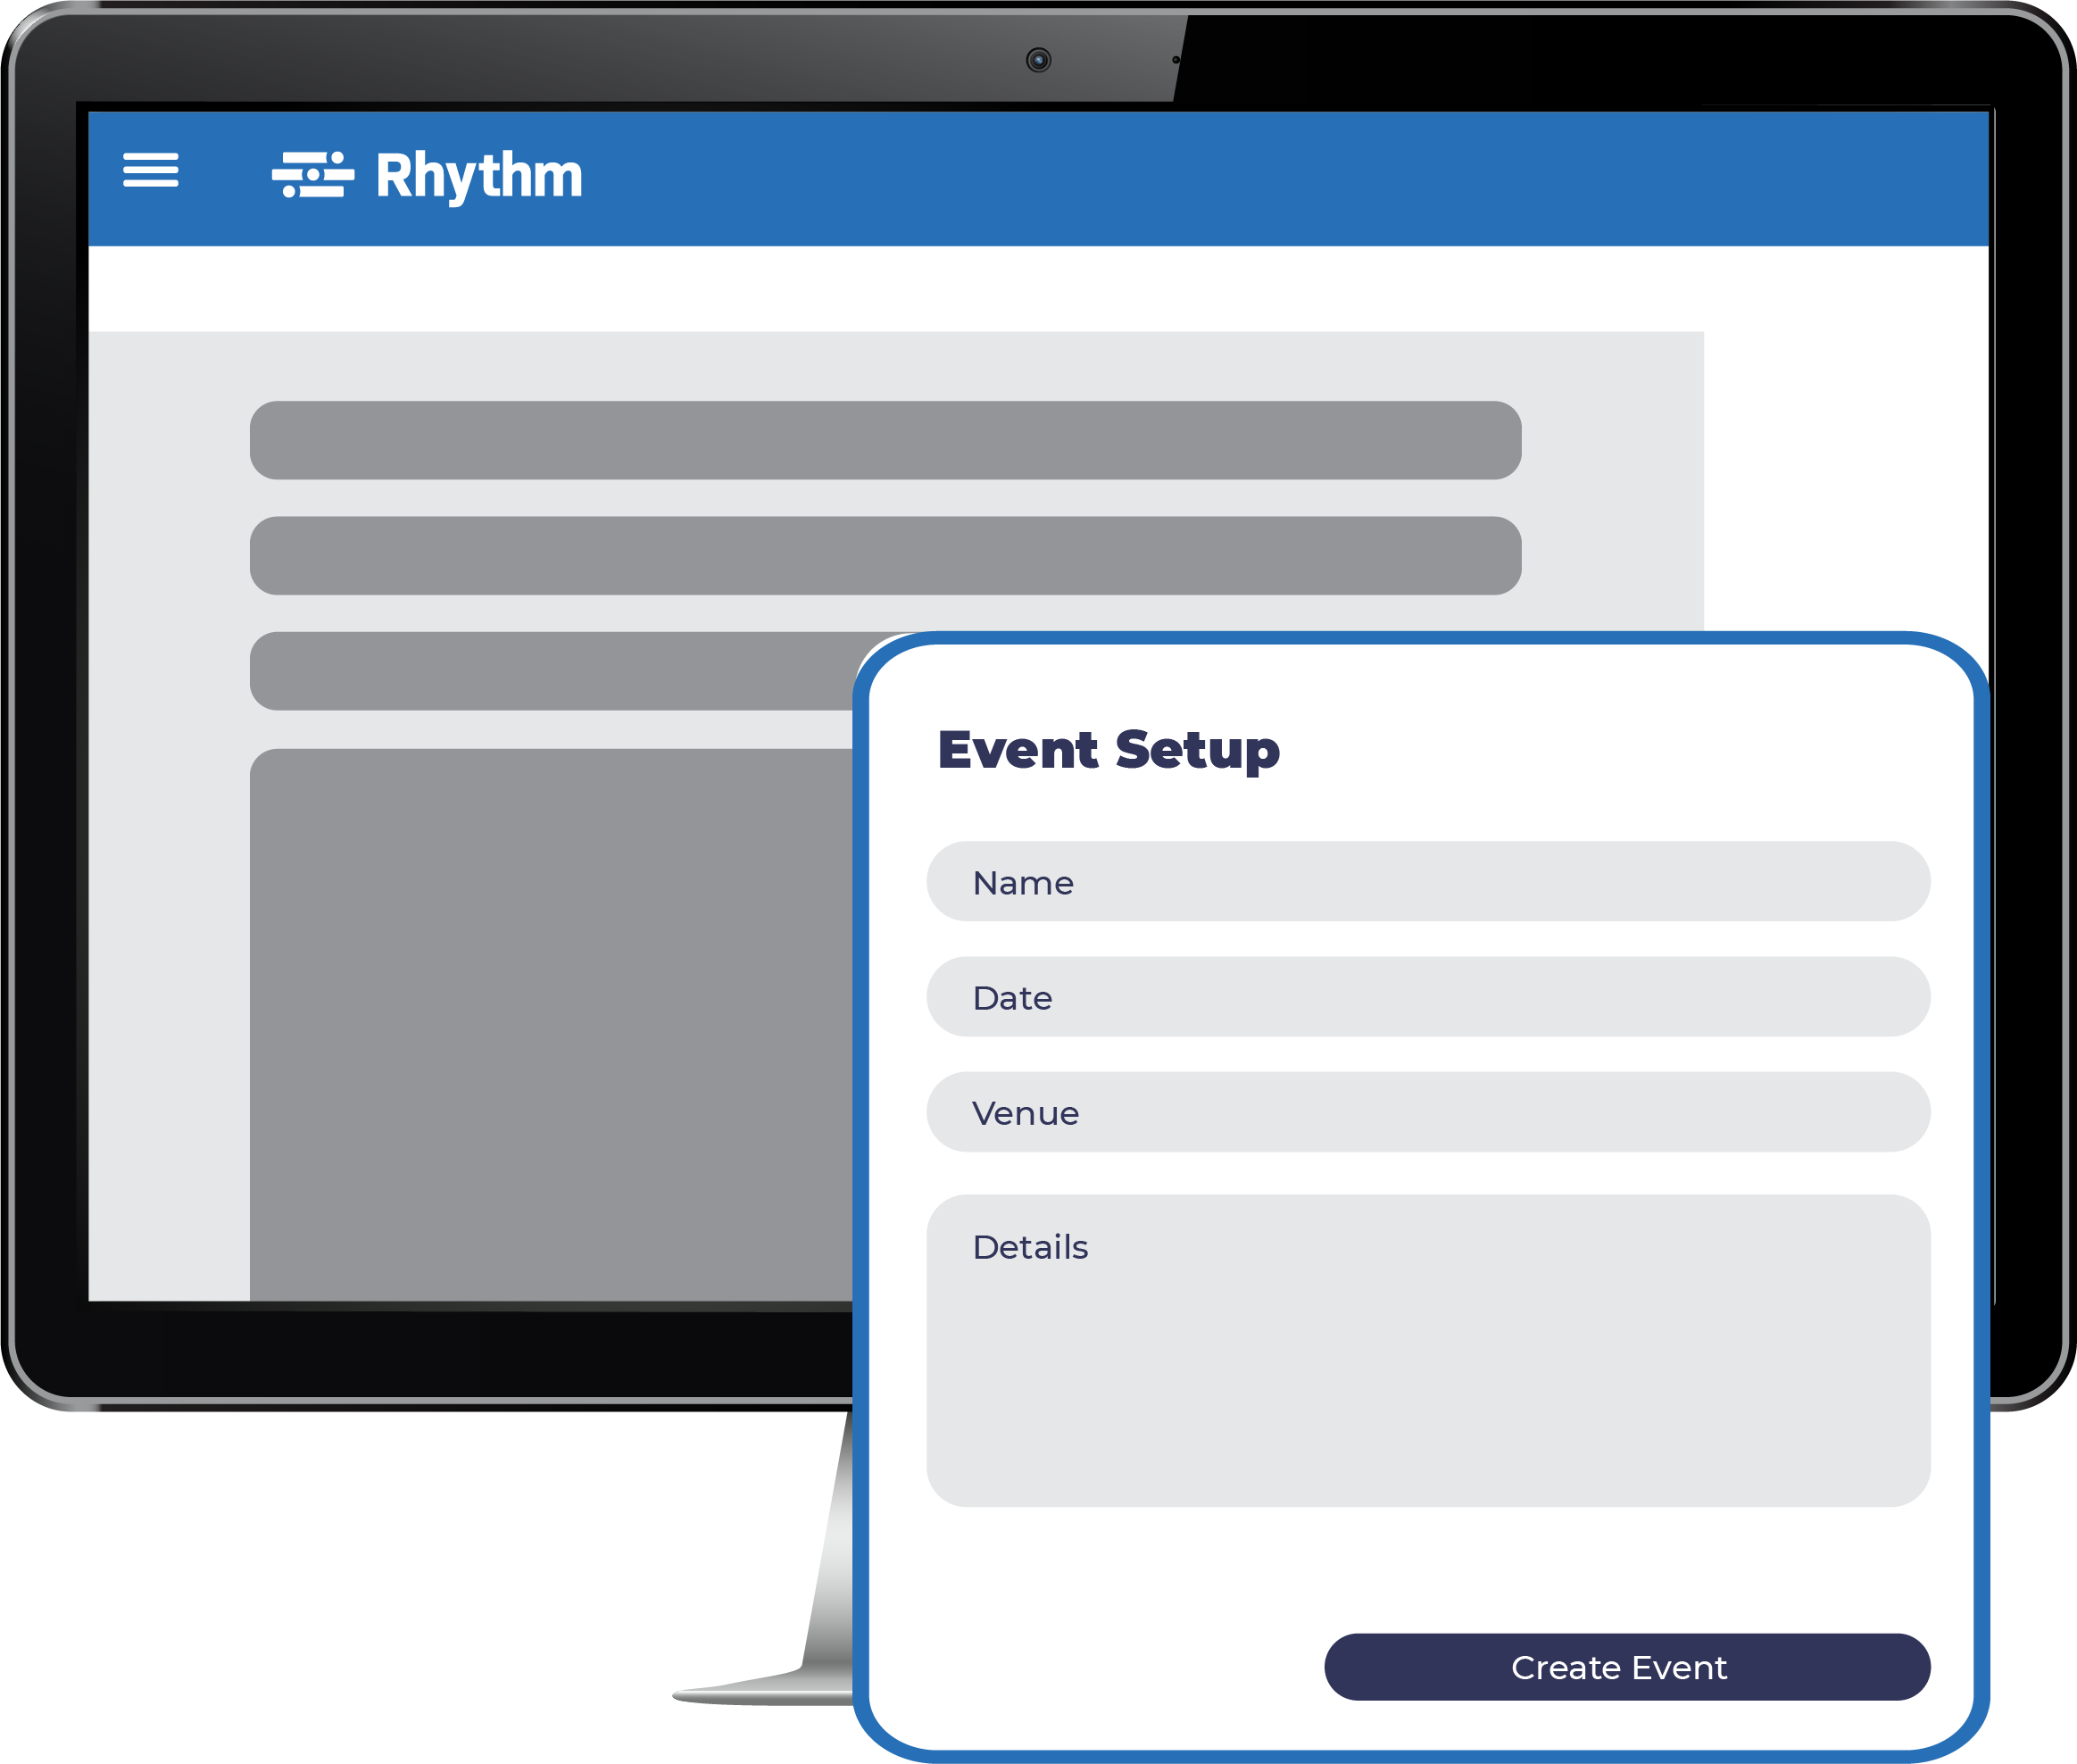 Event setup page on Rhythm software platform